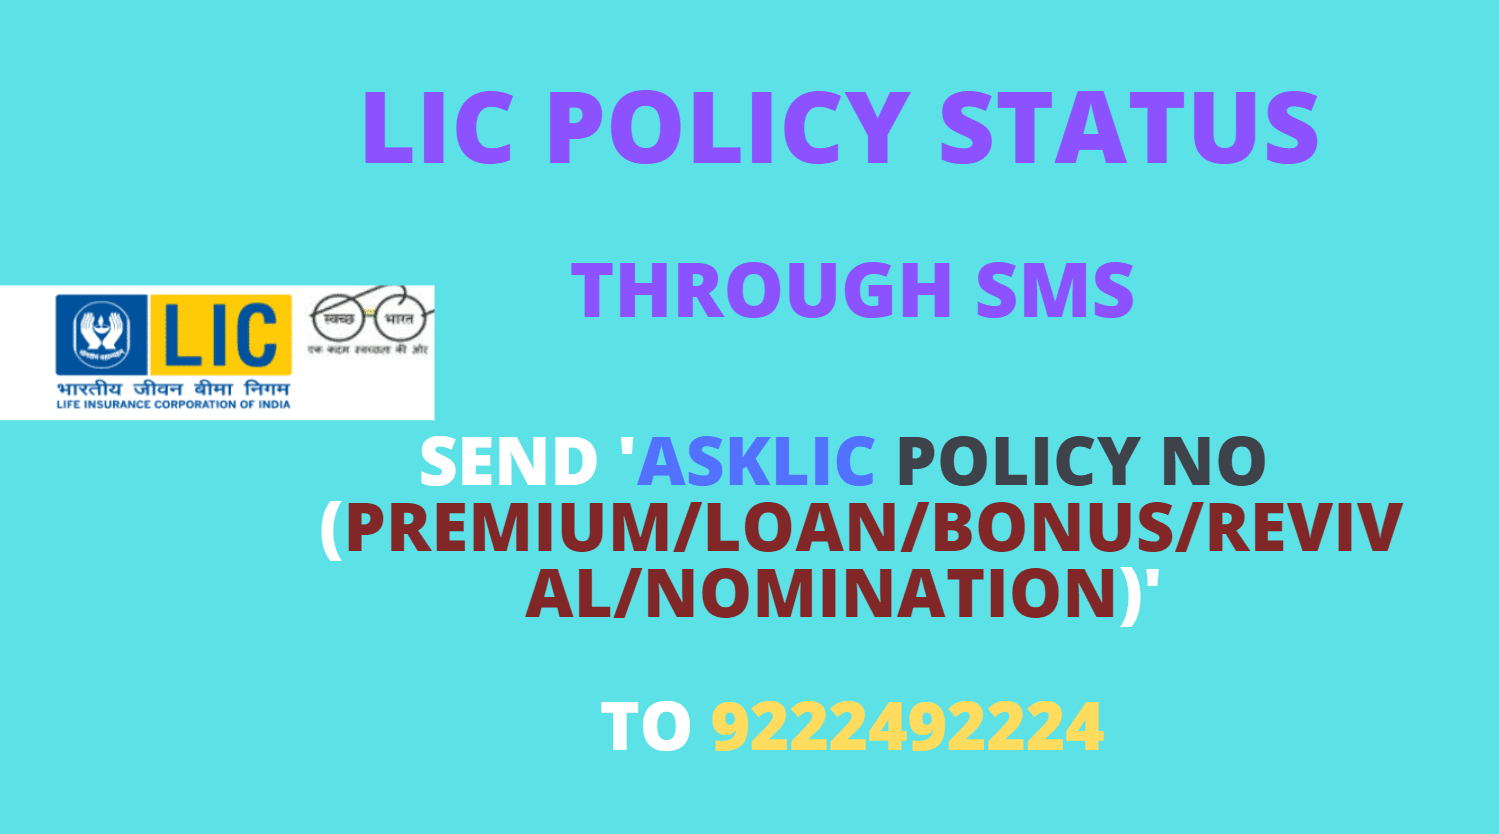 How to Check LIC Policy Status Without Registration